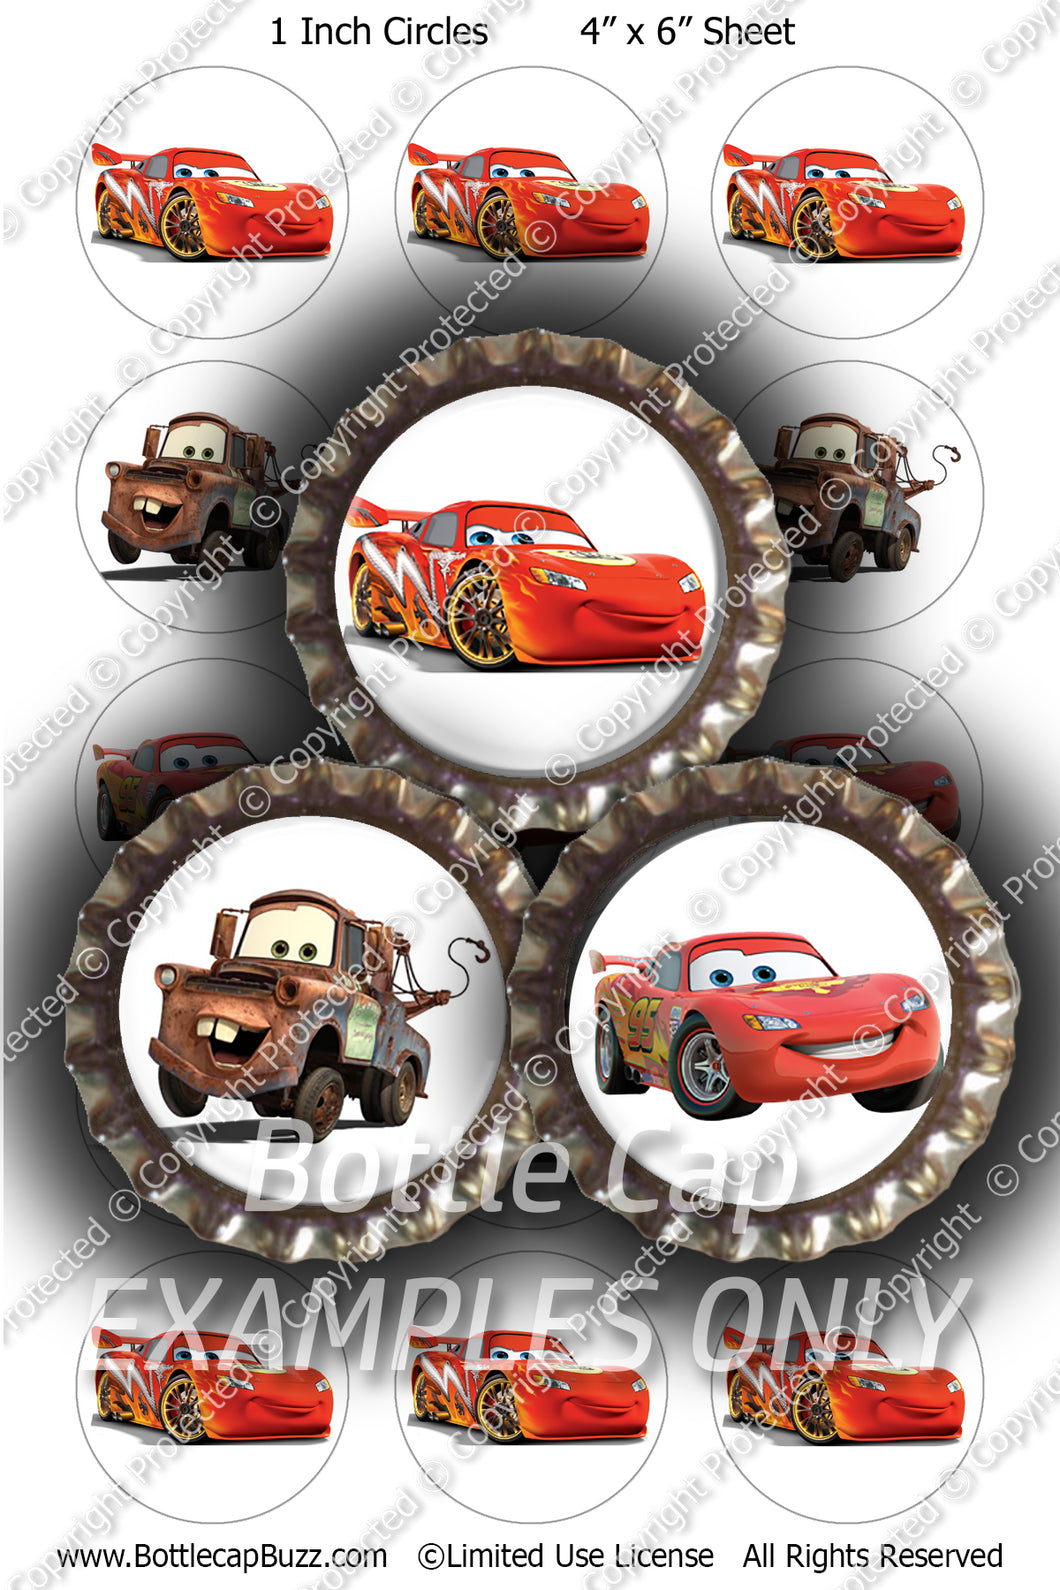 Digital Bottle Cap Images - Cars Collage Sheet (R1109) 1 Inch Circles for Bottlecaps, Magnets, Jewelry, Hairbows, Buttons15